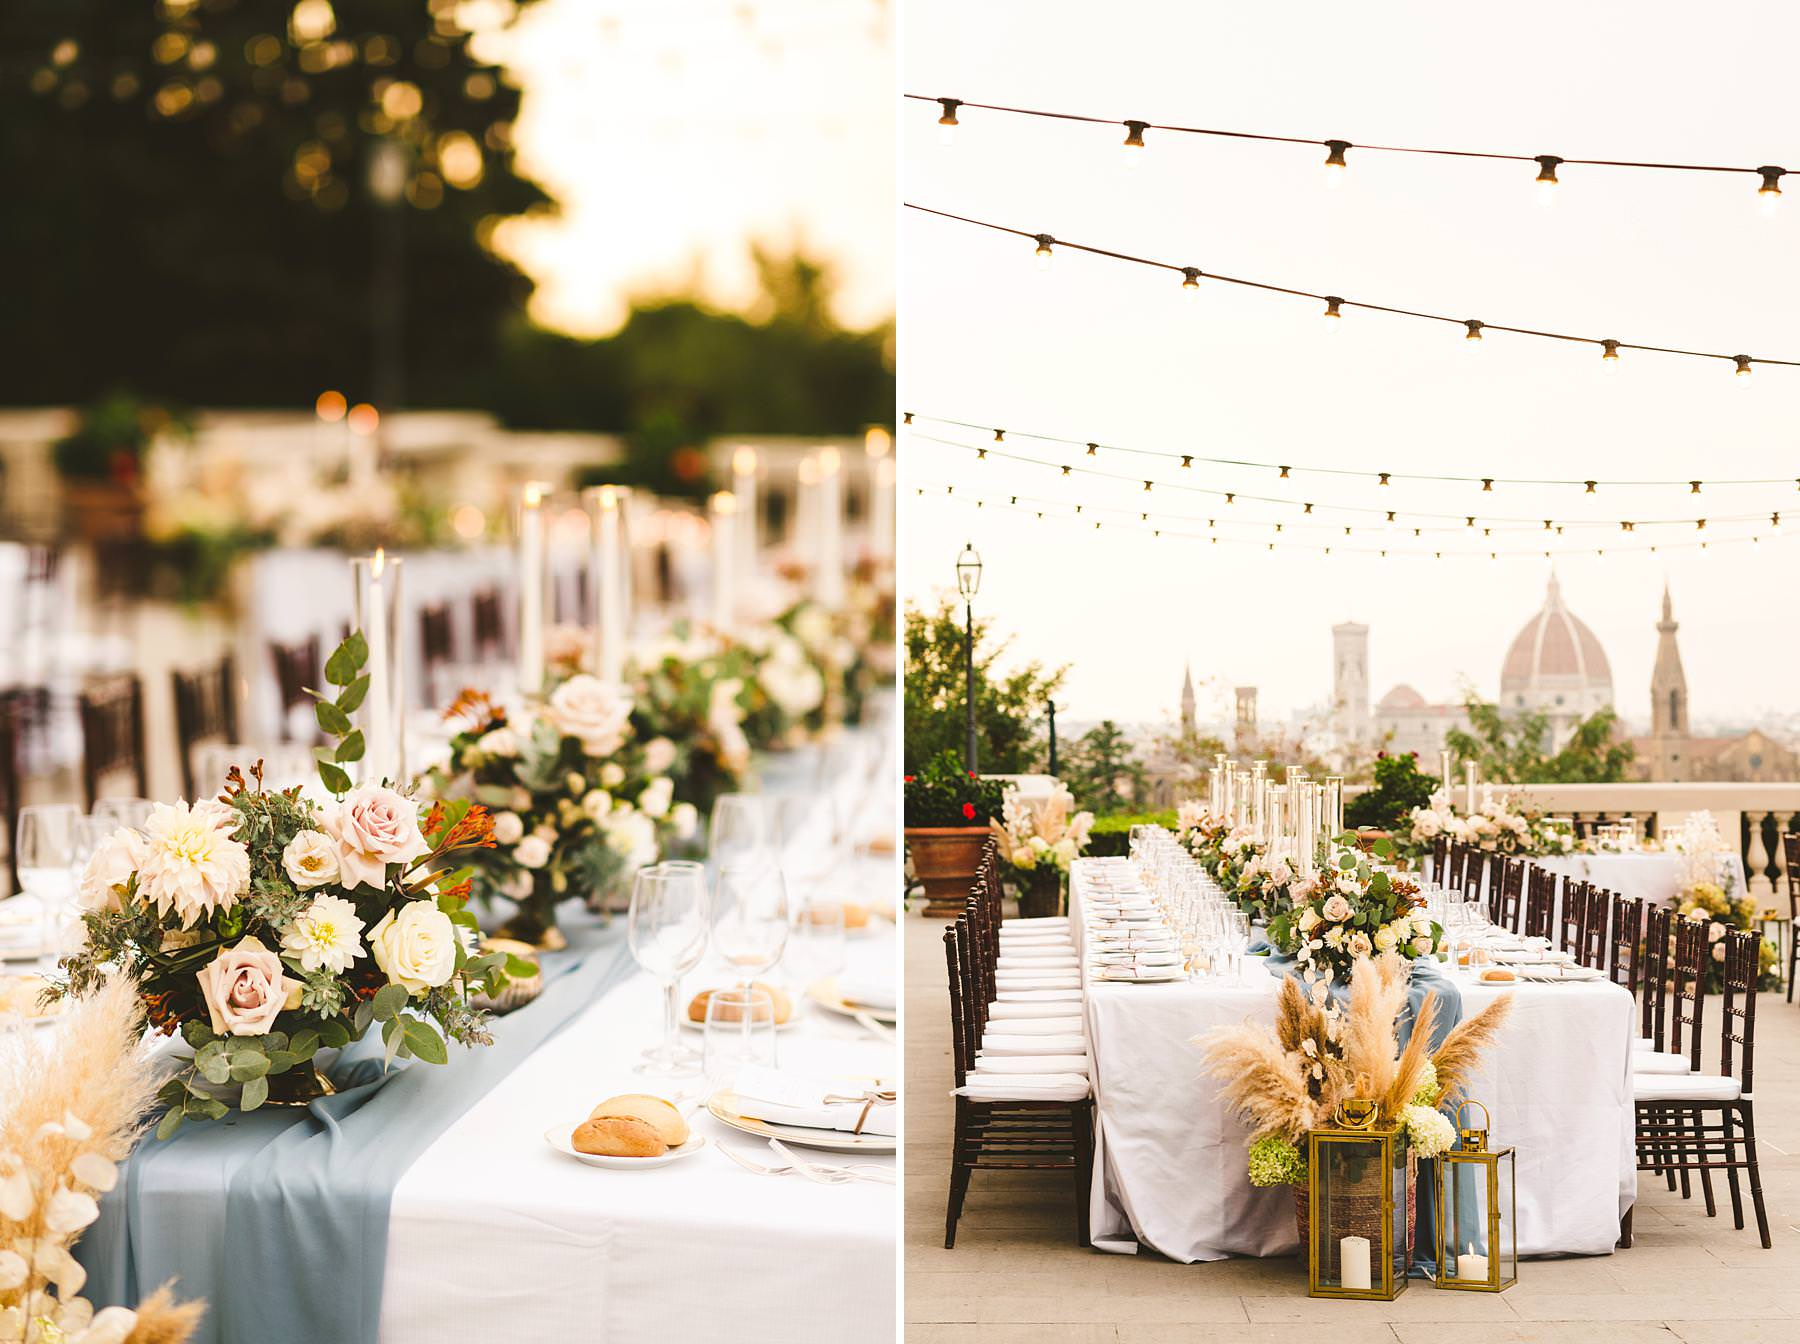 Luxury wedding with amazing view at Villa La Vedetta in Florence. Intimate luxury destination wedding dinner decoration by Stiatti Fiori and Villa La Vedetta. Every details was spotless and delightful, contributing to creating the luxury wedding bride and groom had been dreaming of